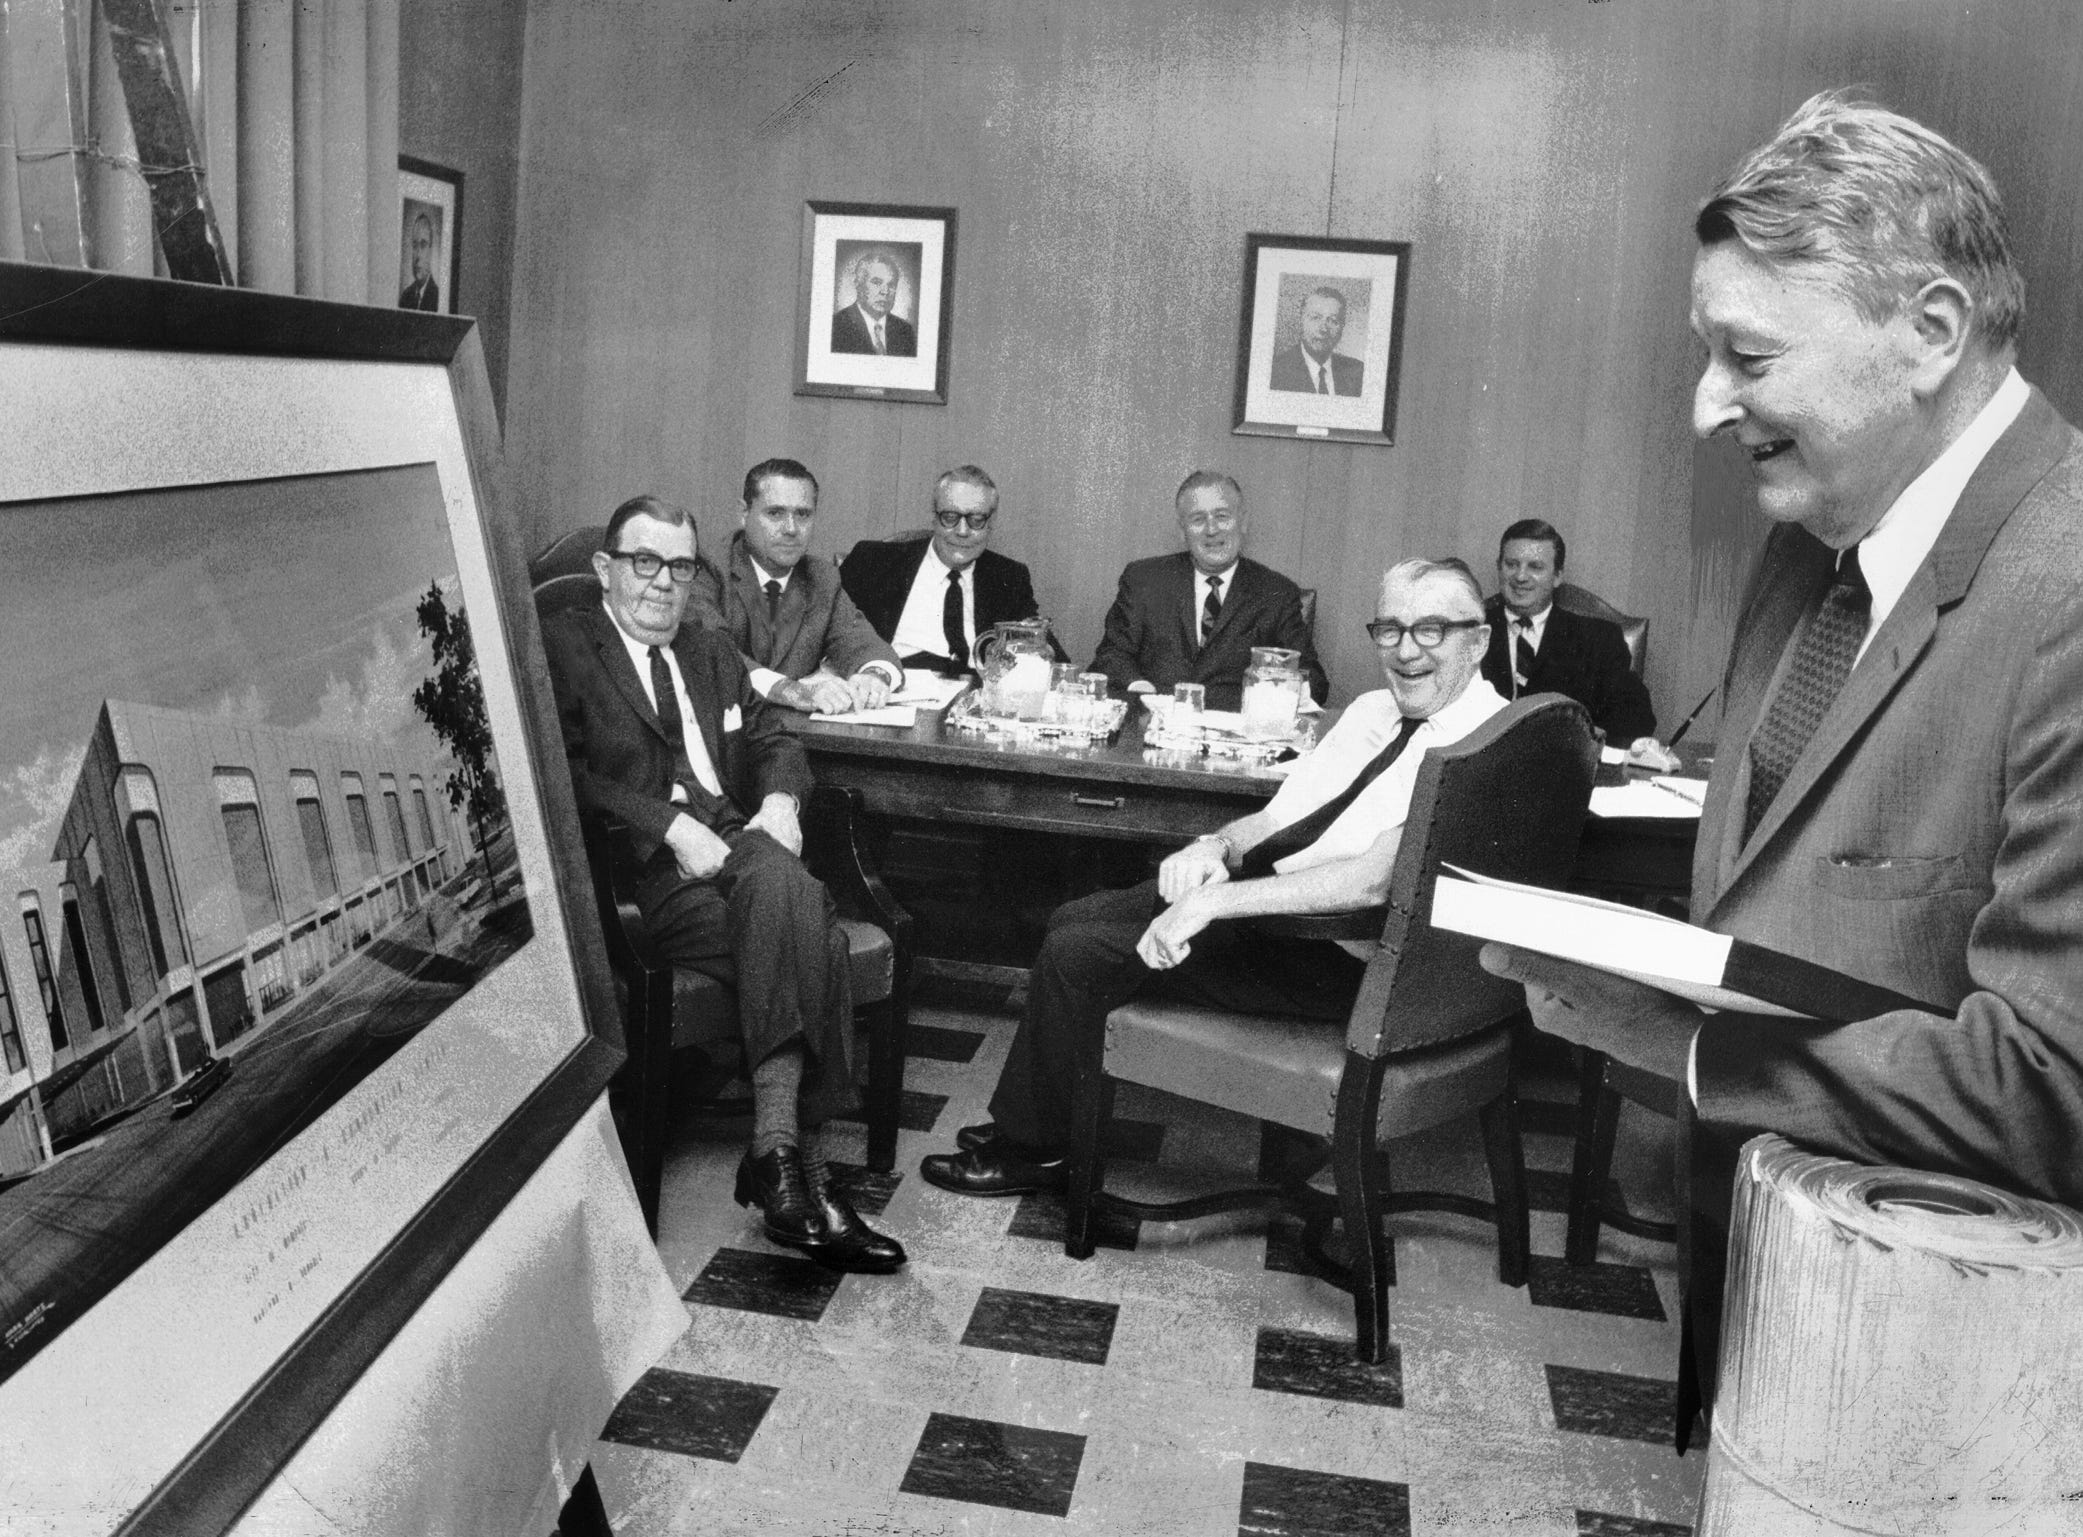 Leaning on 145 pages of blueprints and holding an inch-thick set of specifications, Everett R. Cook (right), Auditorium Commission chairman, looks at a rendering on Nov. 16, 1967, of the convention center that will later bear his name. Seated around the table (clockwise from left) are City Commissioner L.D. Ervin, Bill Van Hersh, Jim Woods, Lester Presson, architect Louis Haglund and auditorium manager Chauncey Barbour.